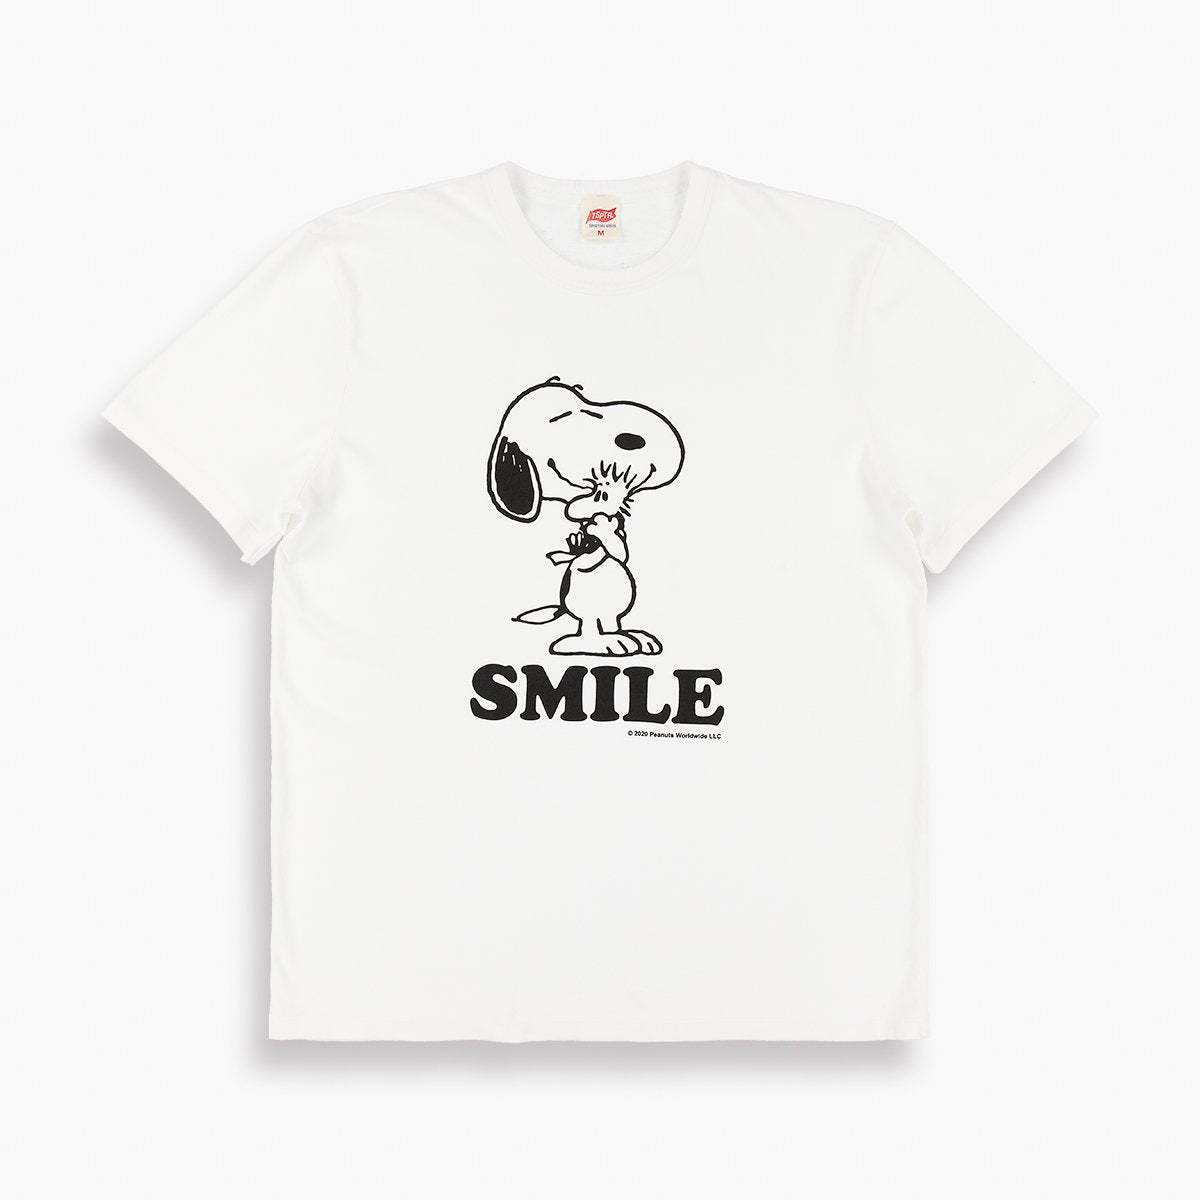 White shirt with a design of Snoopy hugging Woodstock. The word SMILE in black text at the bottom.